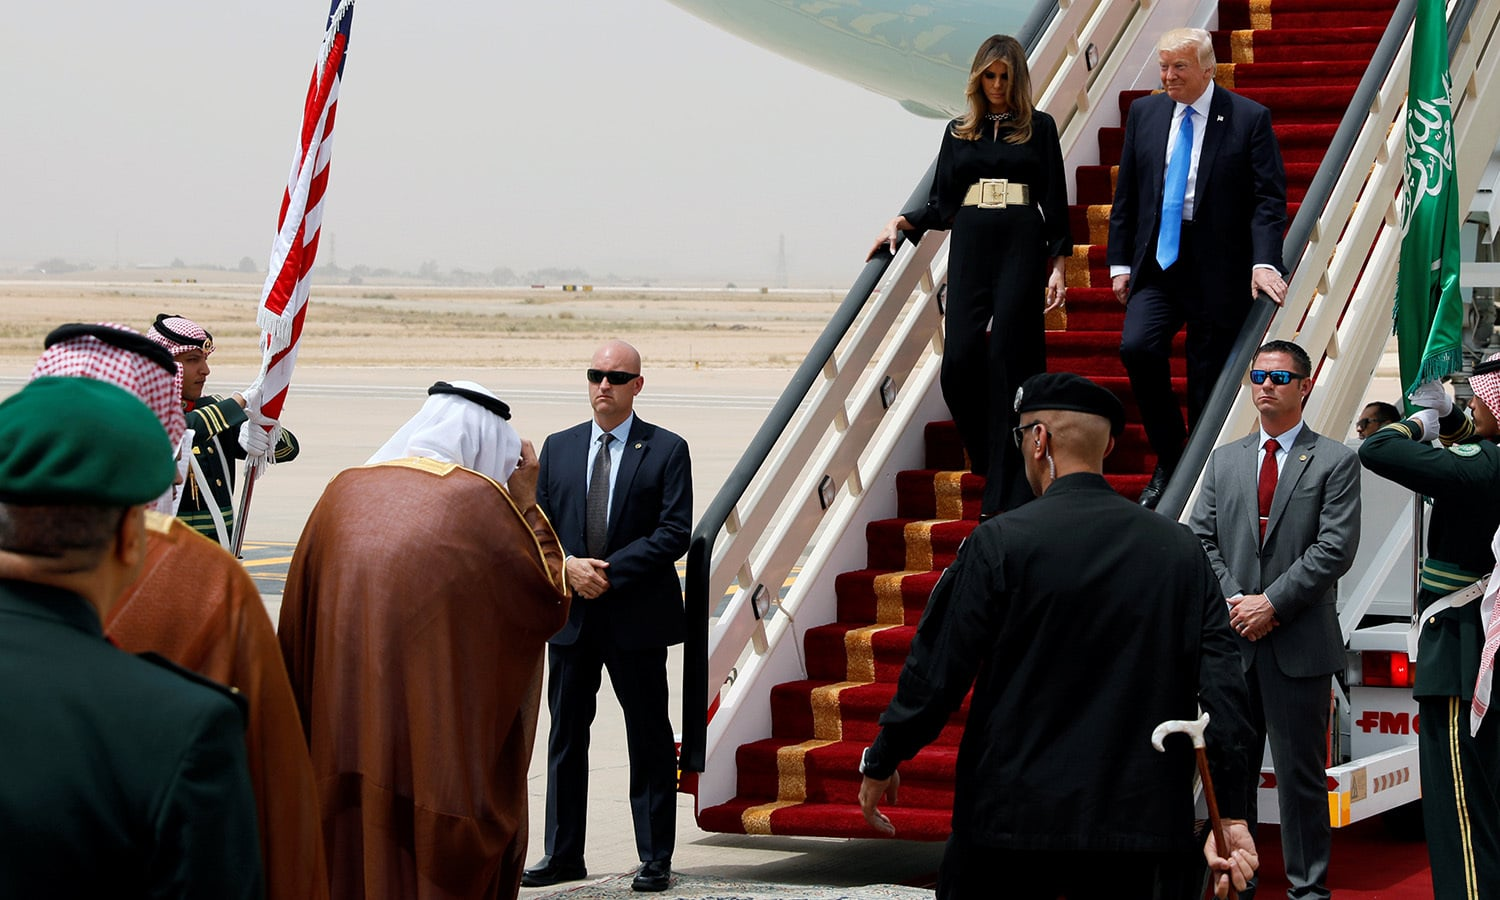 Saudi Arabia's King Salman bin Abdulaziz Al Saud (lower left, back to camera) welcomes US President Donald Trump and first lady Melania Trump as they arrive aboard Air Force One in Riyadh, May 20.─Reuters/File